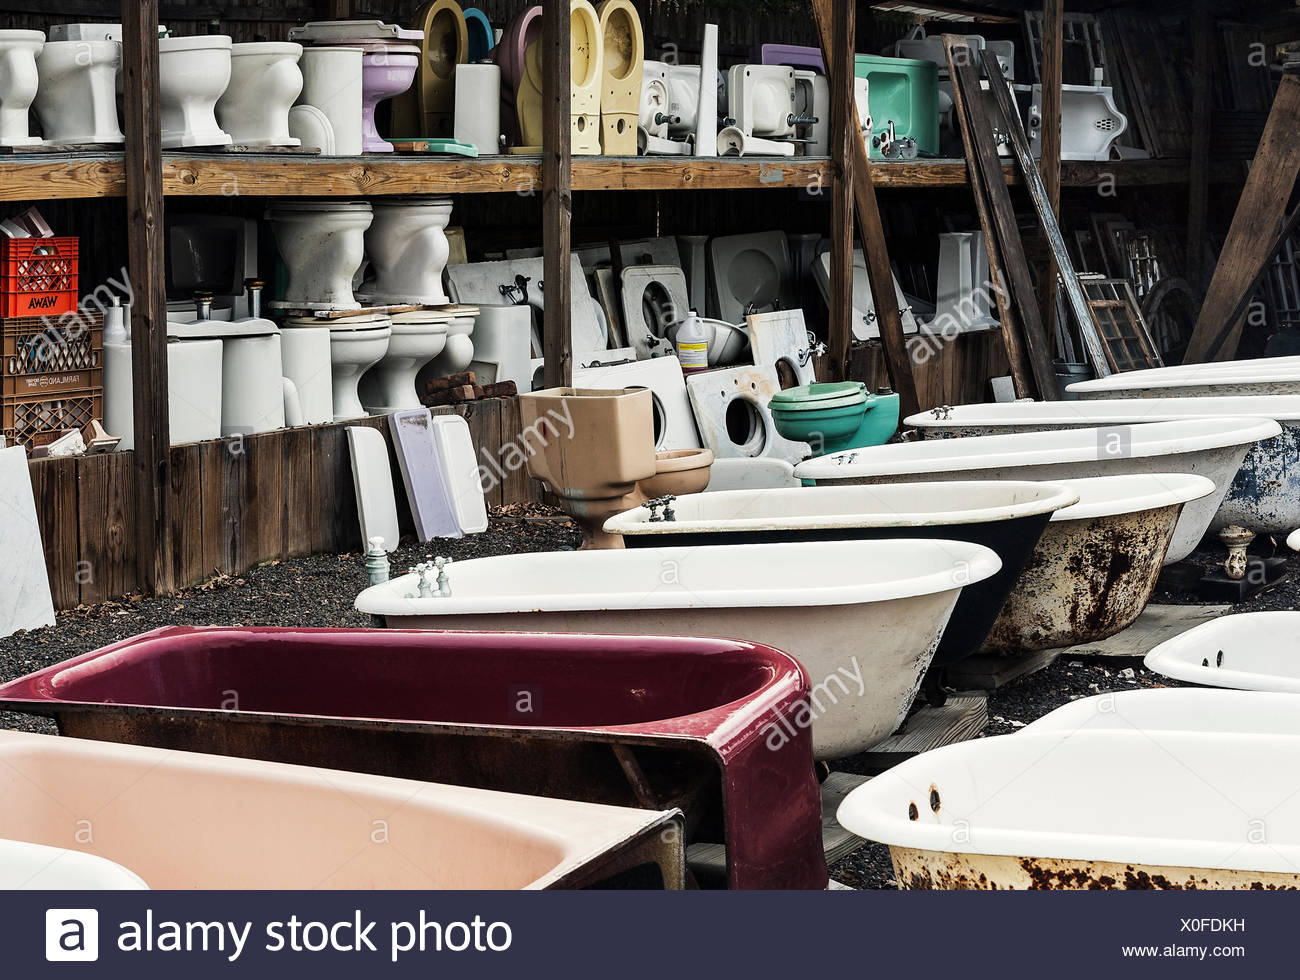 Reclaimed toilets and bath tubs at a salvage yard Stock Photo ...